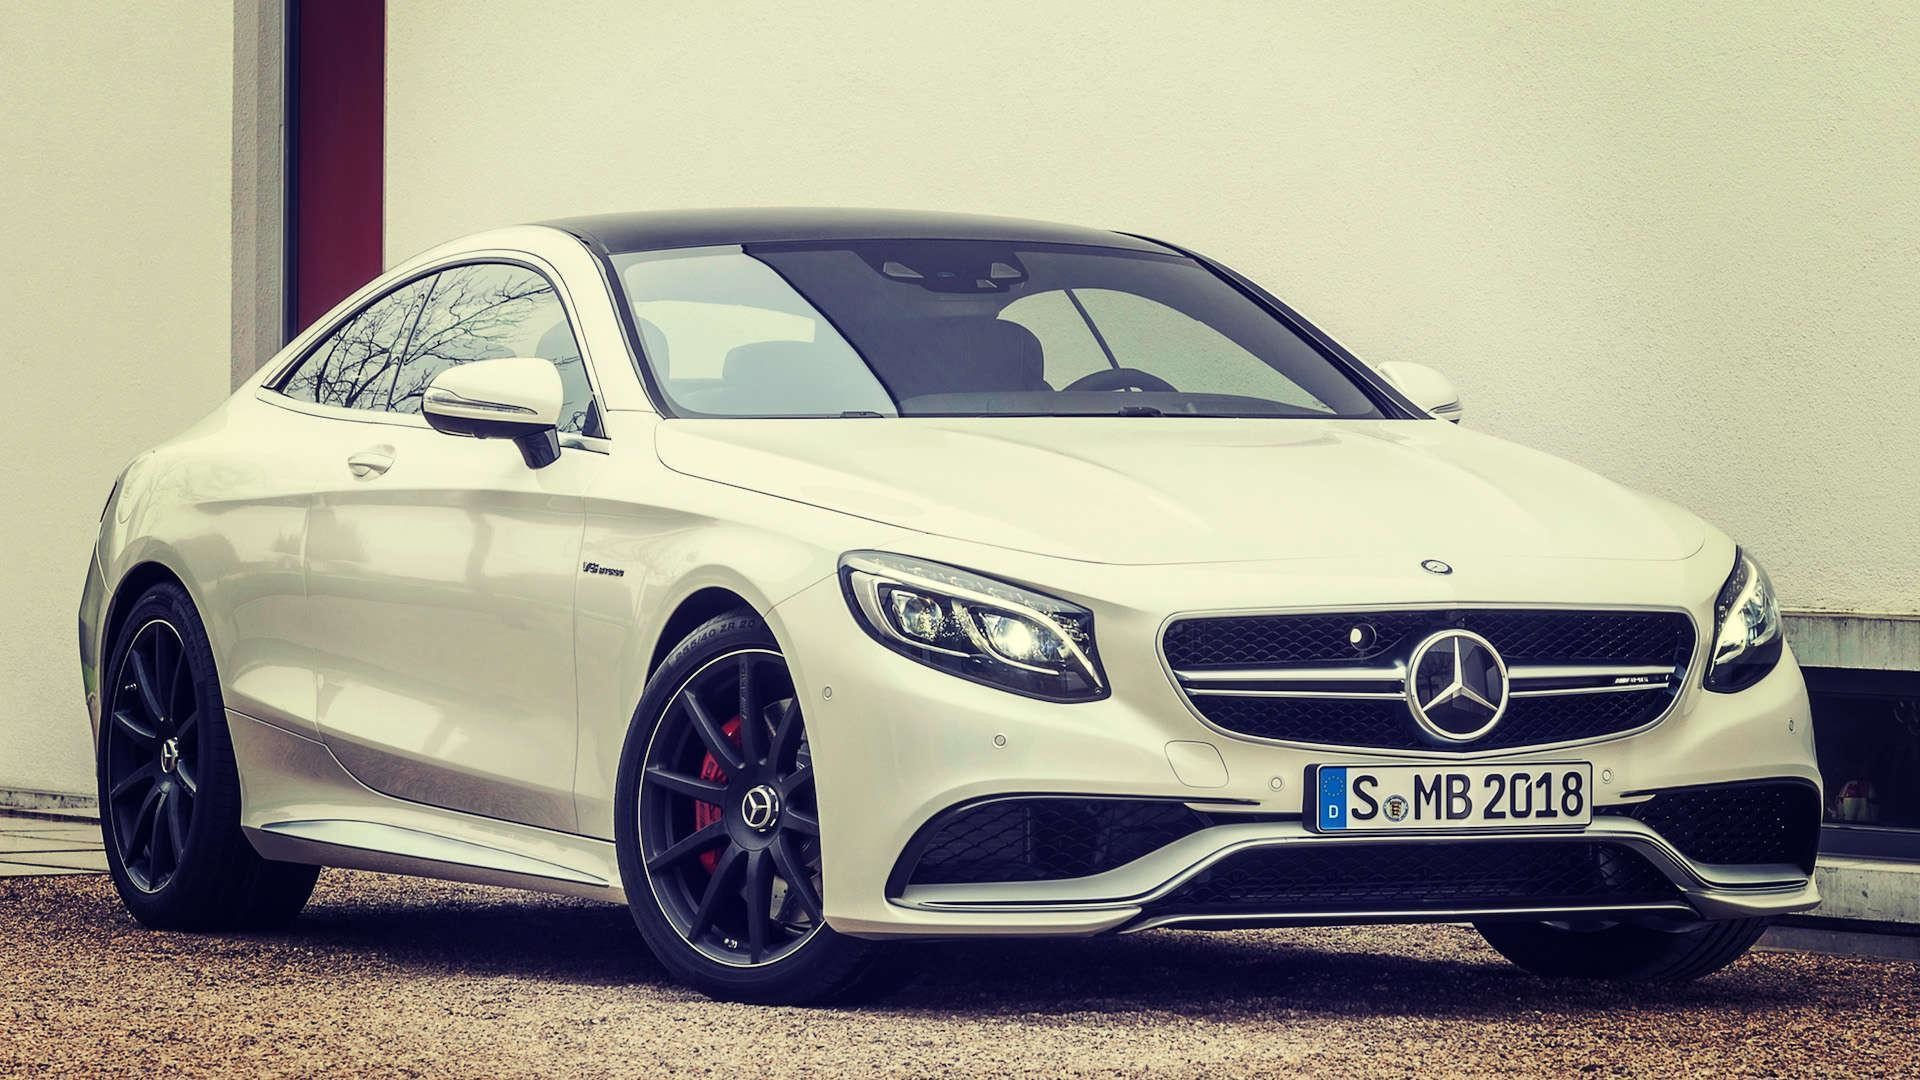 1920x1080 Download 2015 Mercedes Benz S63 AMG Coupe HD Wallpaper 1080p .